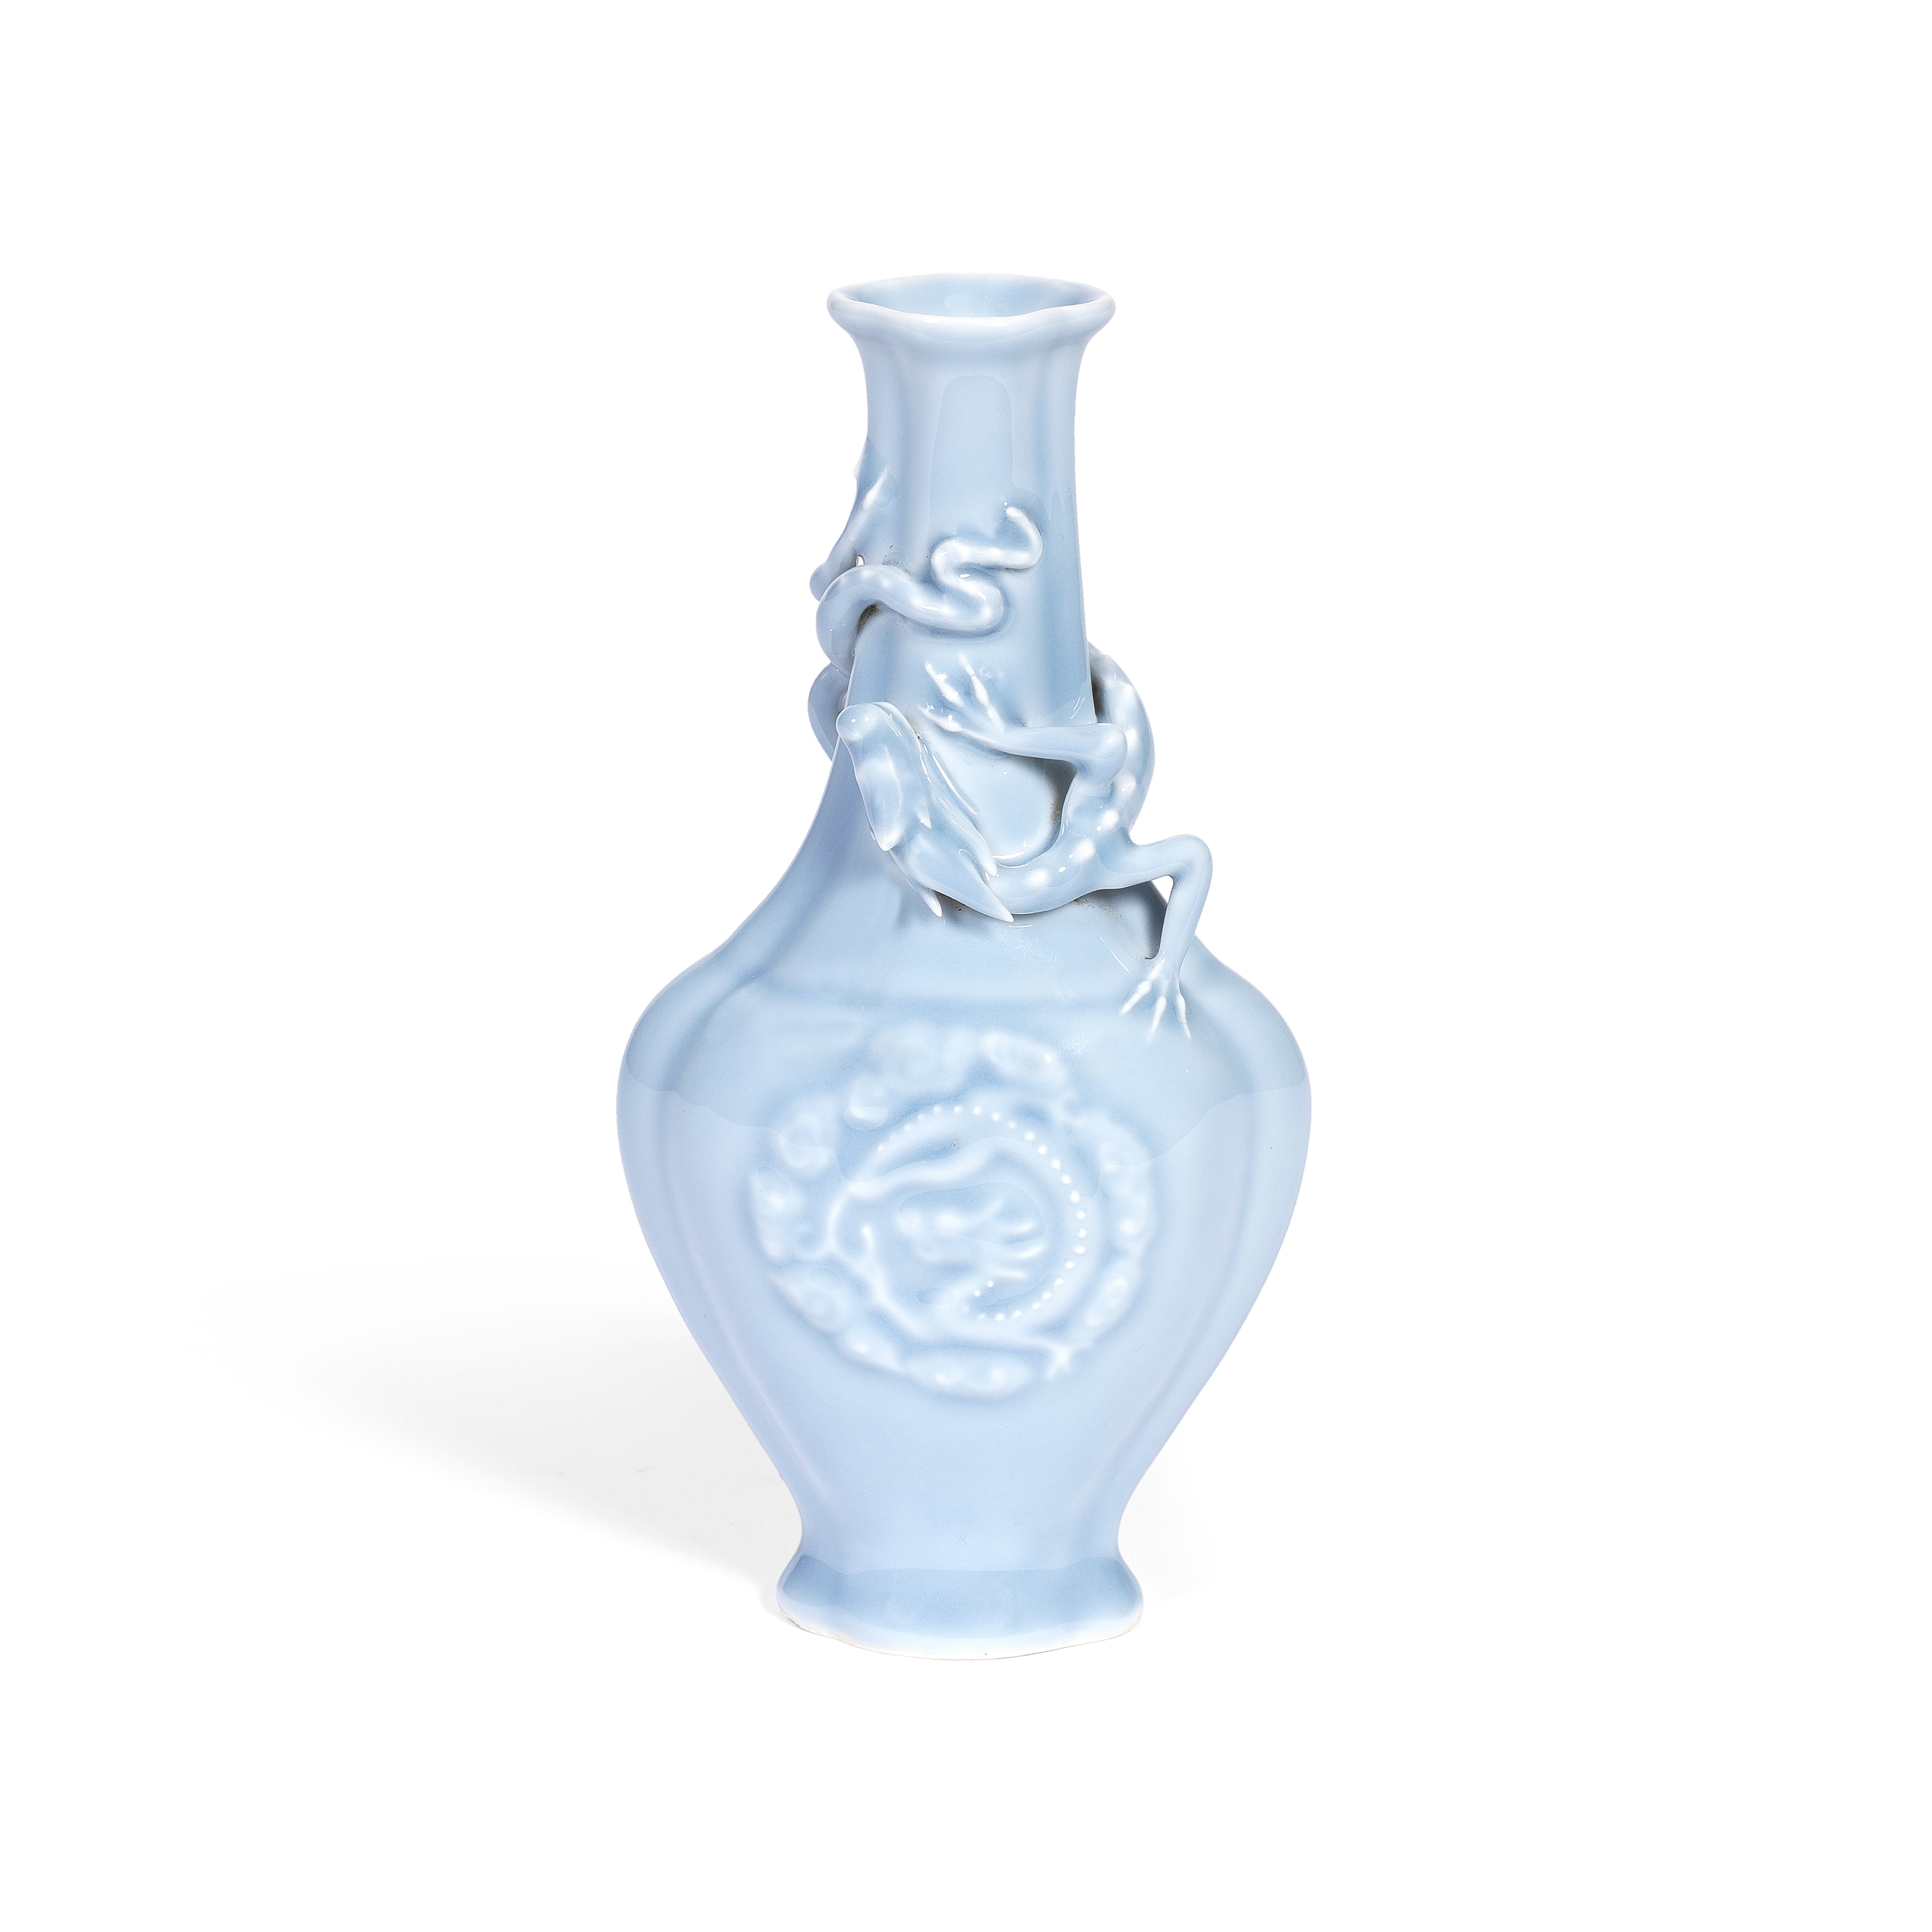 A CLAIR-DE-LUNE 'CHILONG' VASE Qianlong minyao seal mark and of the period